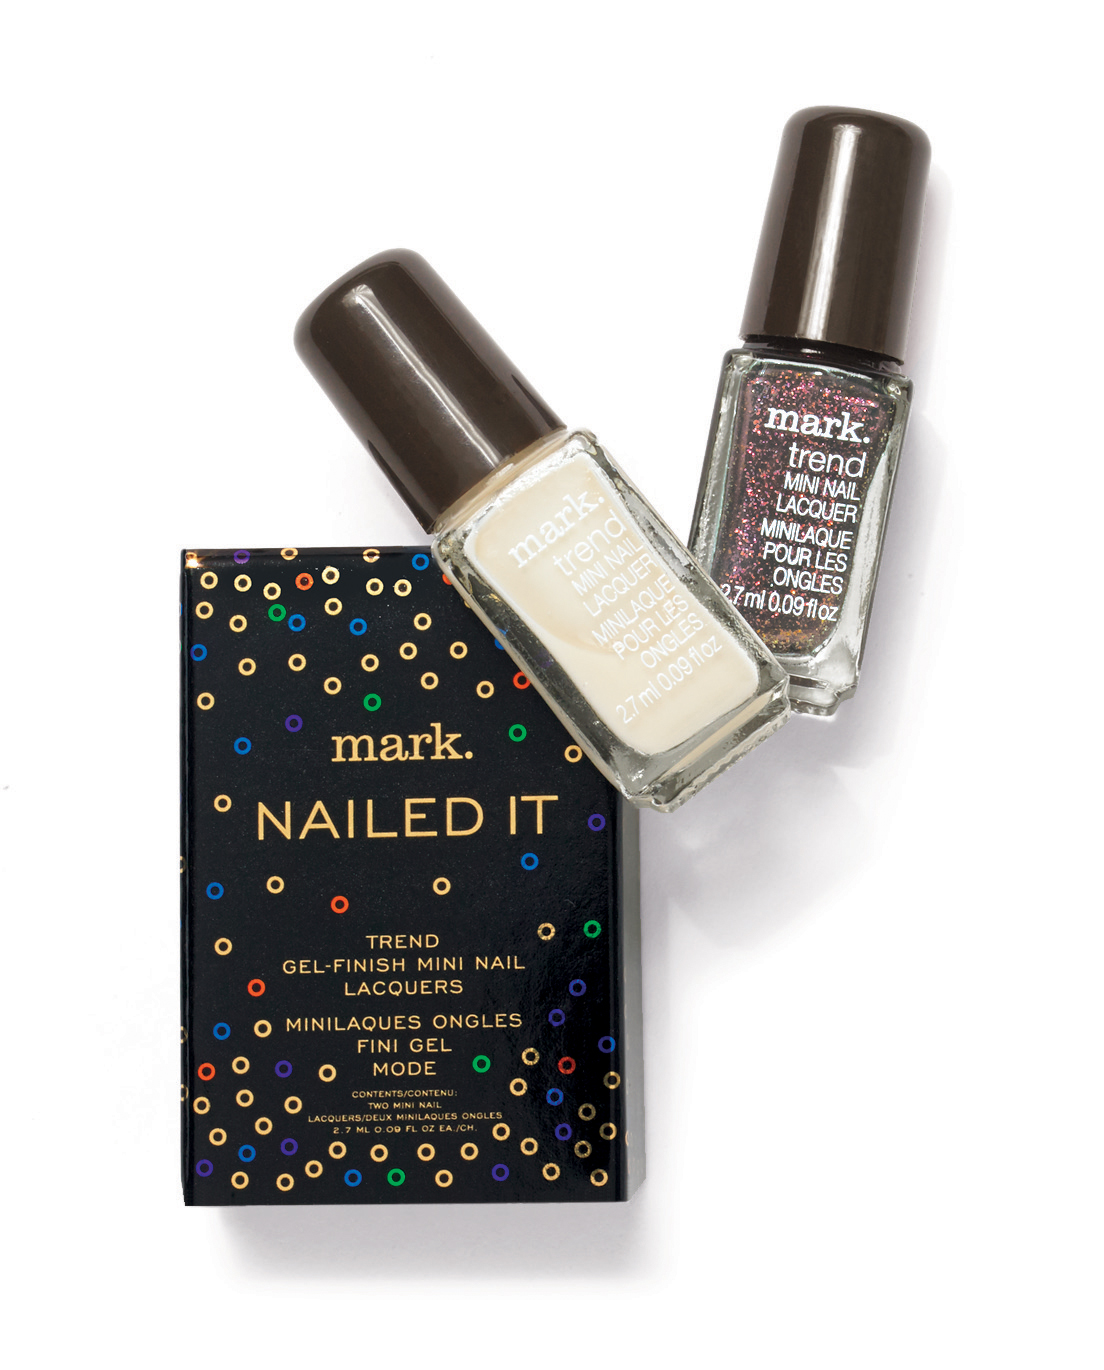 These high-impact nail polishes deliver gel-like shine in two limited-edition shades: eggnog, a deliciously creamy white, and sugar plum, a dreamy shimmering marsala.